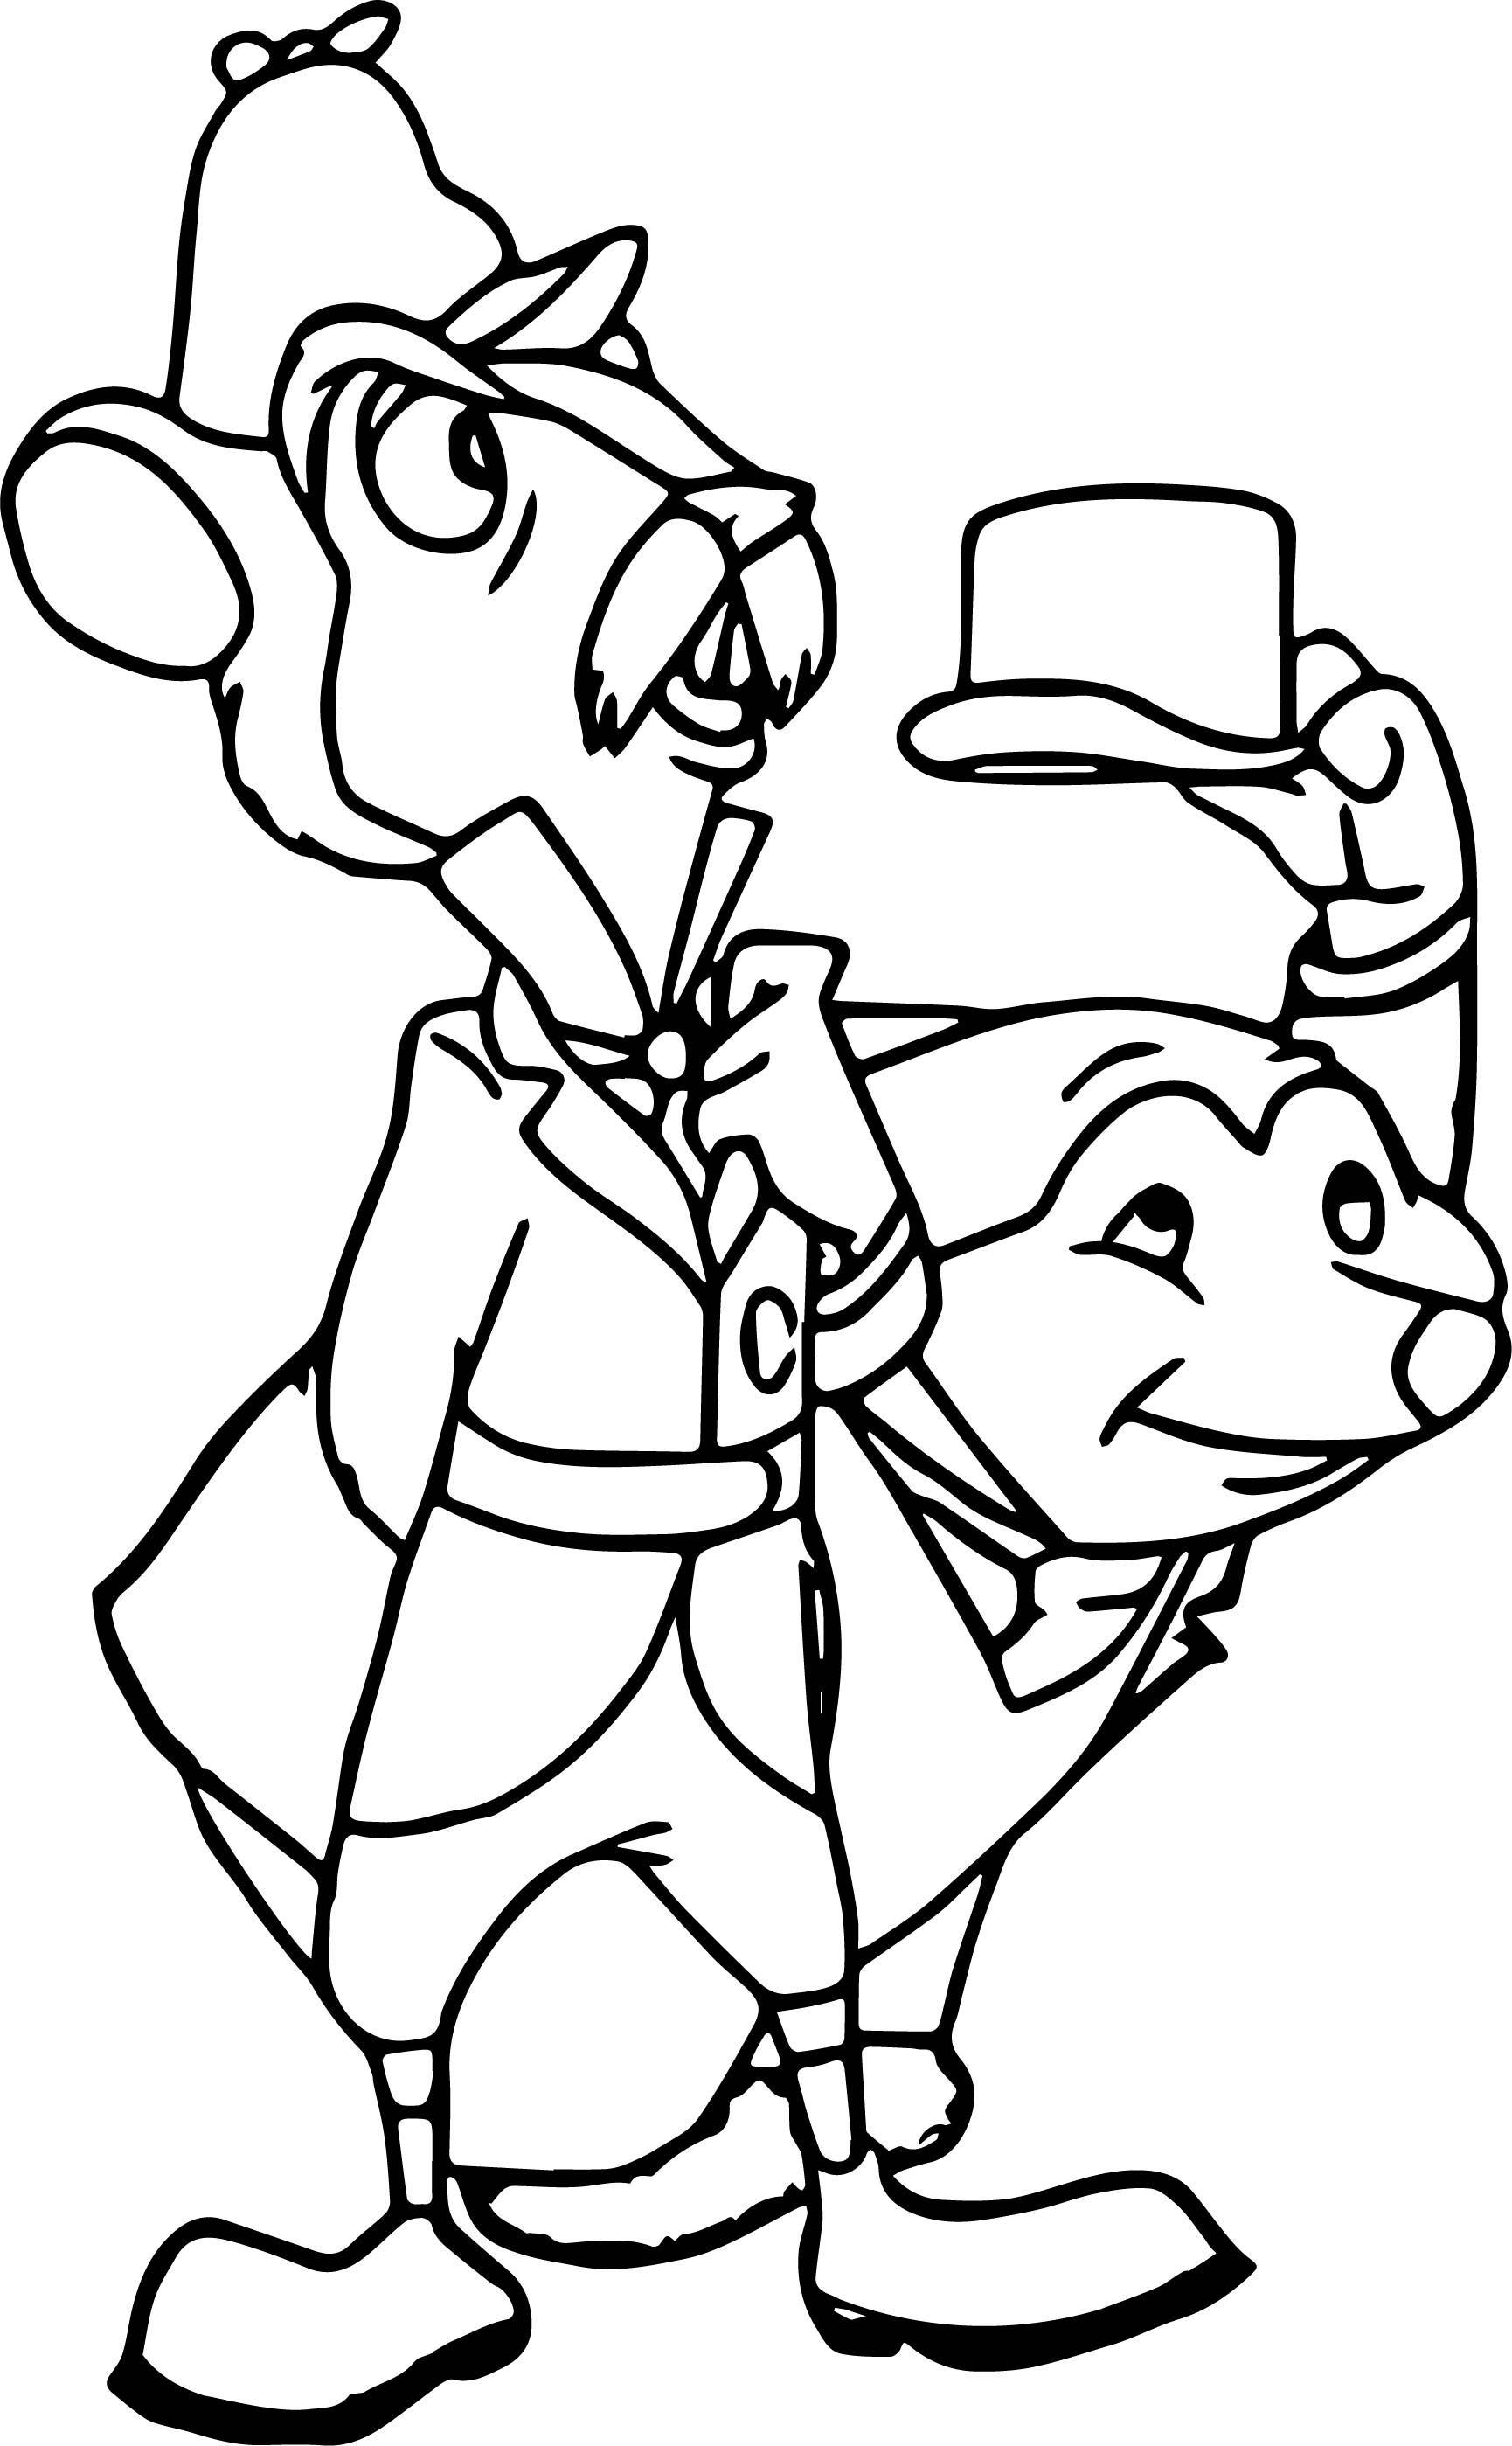 Mole Rat Coloring Pages